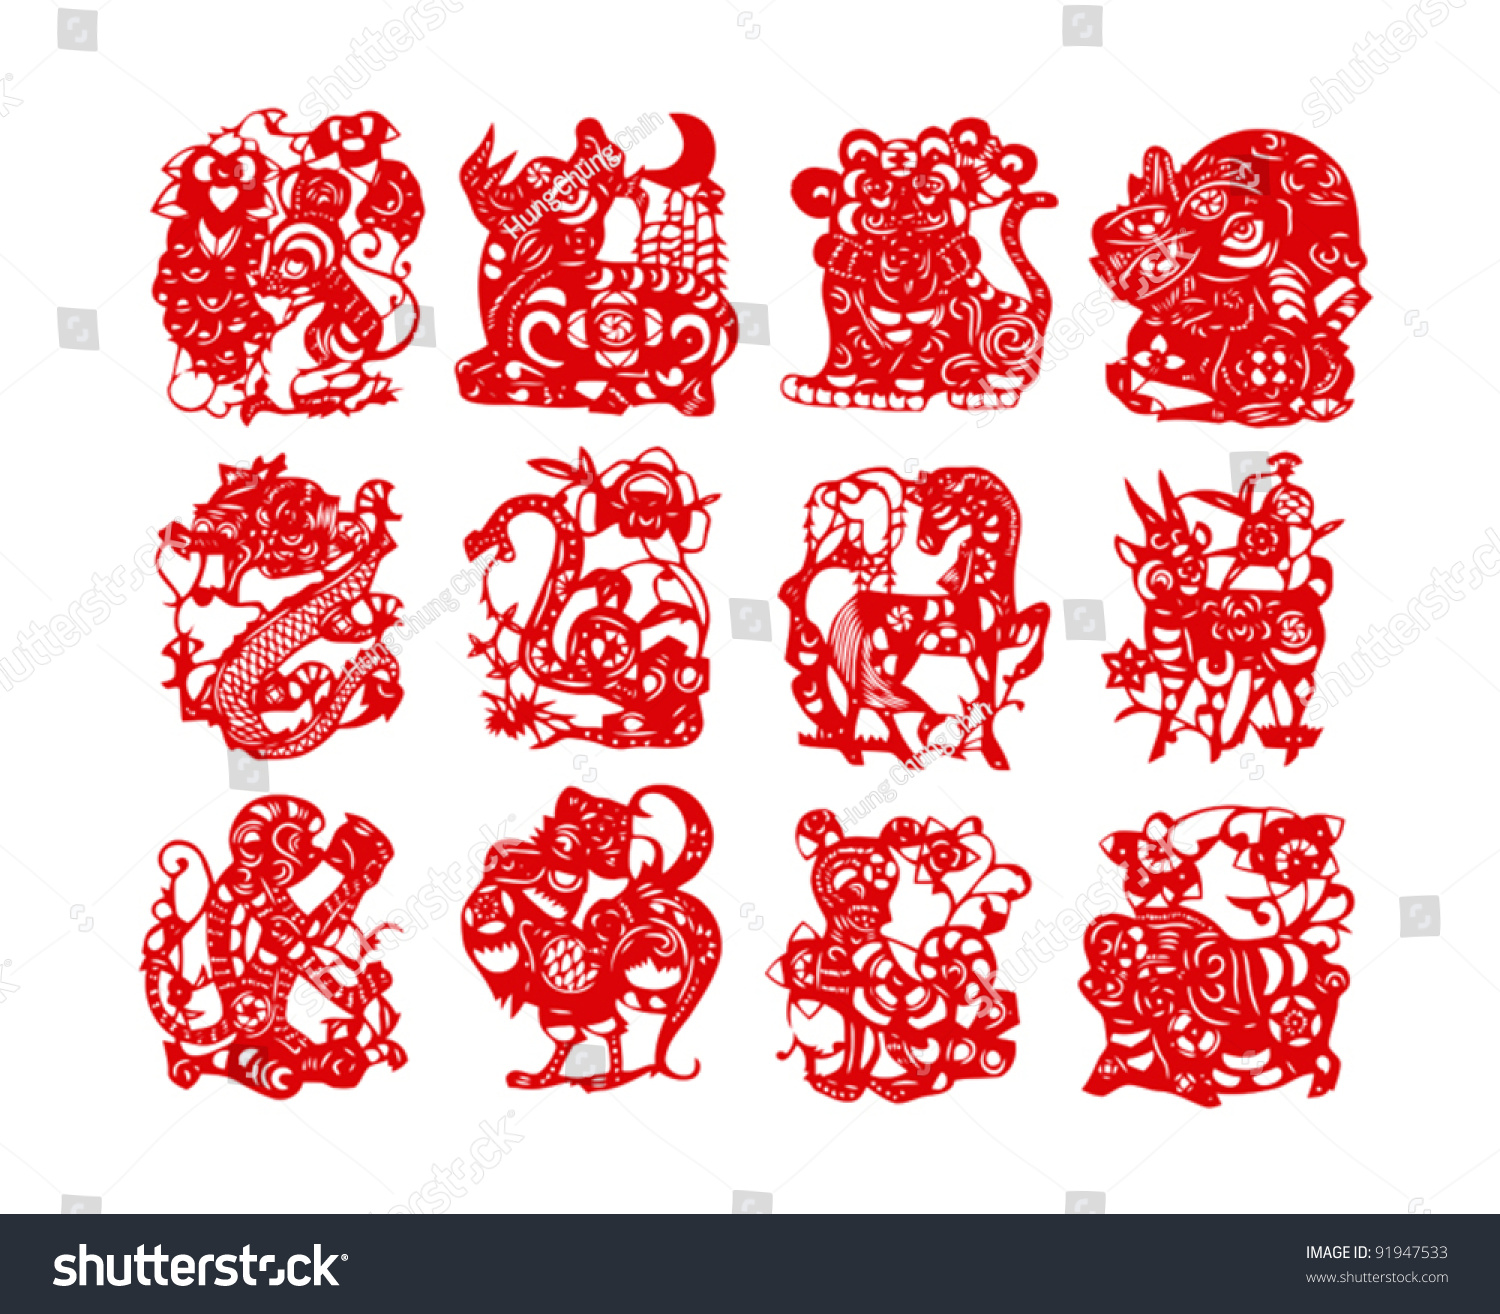 Chinese Zodiac Signs Stock Illustration - Download Image